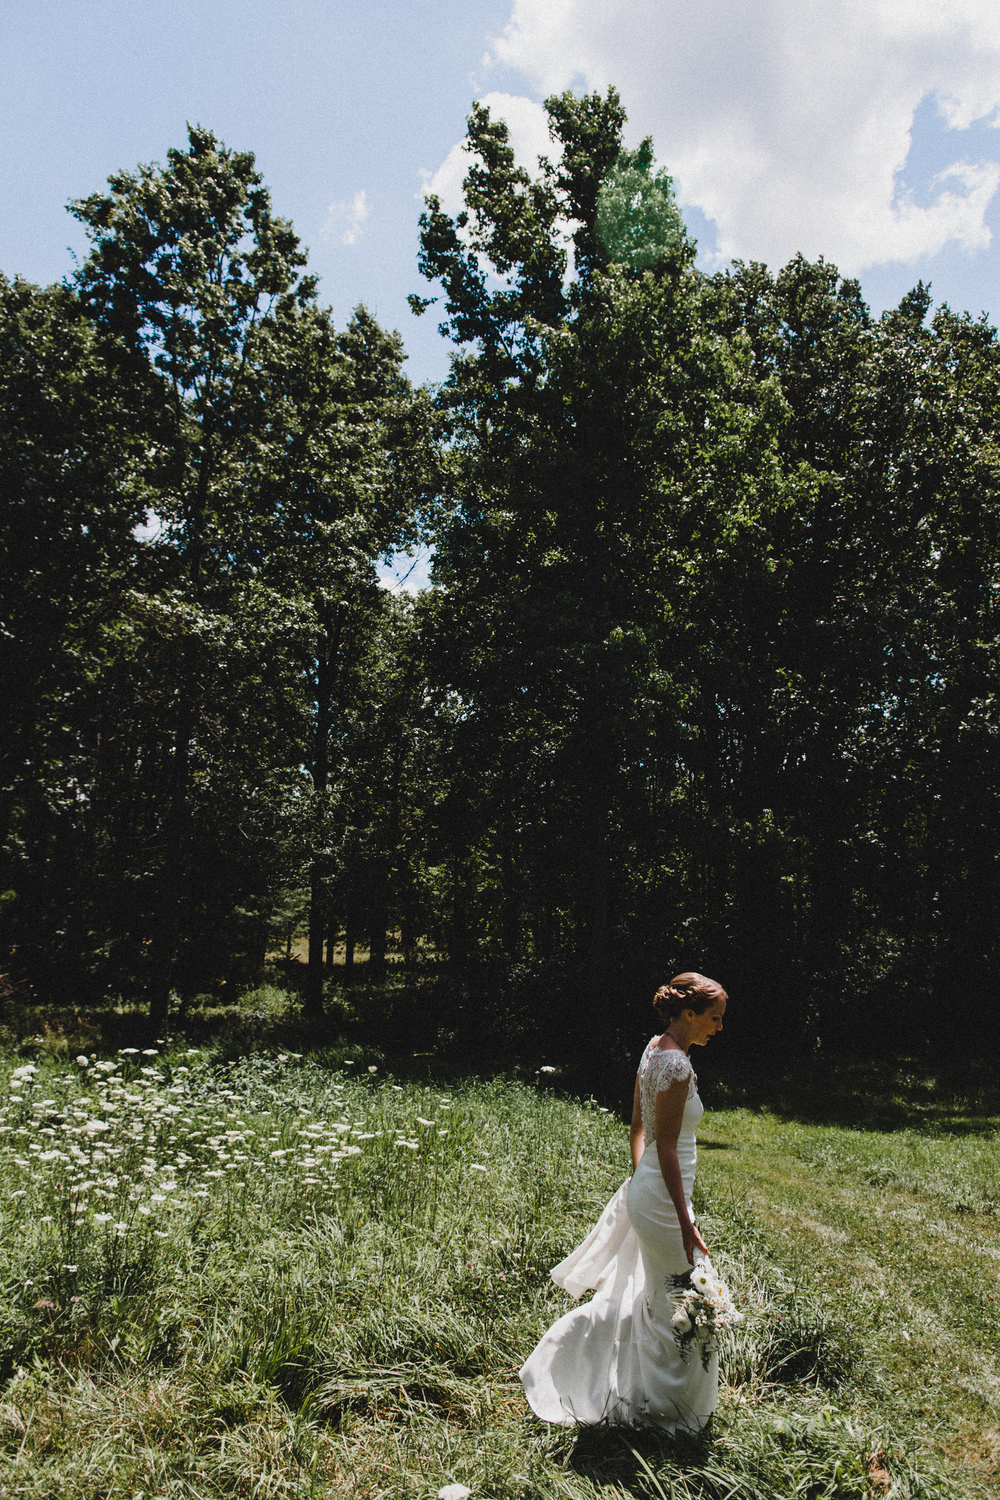 Intimate-Backyard-Farmhouse-Ohio-Wedding-Andi+Ben_Mallory+Justin-Photographers-95.JPG